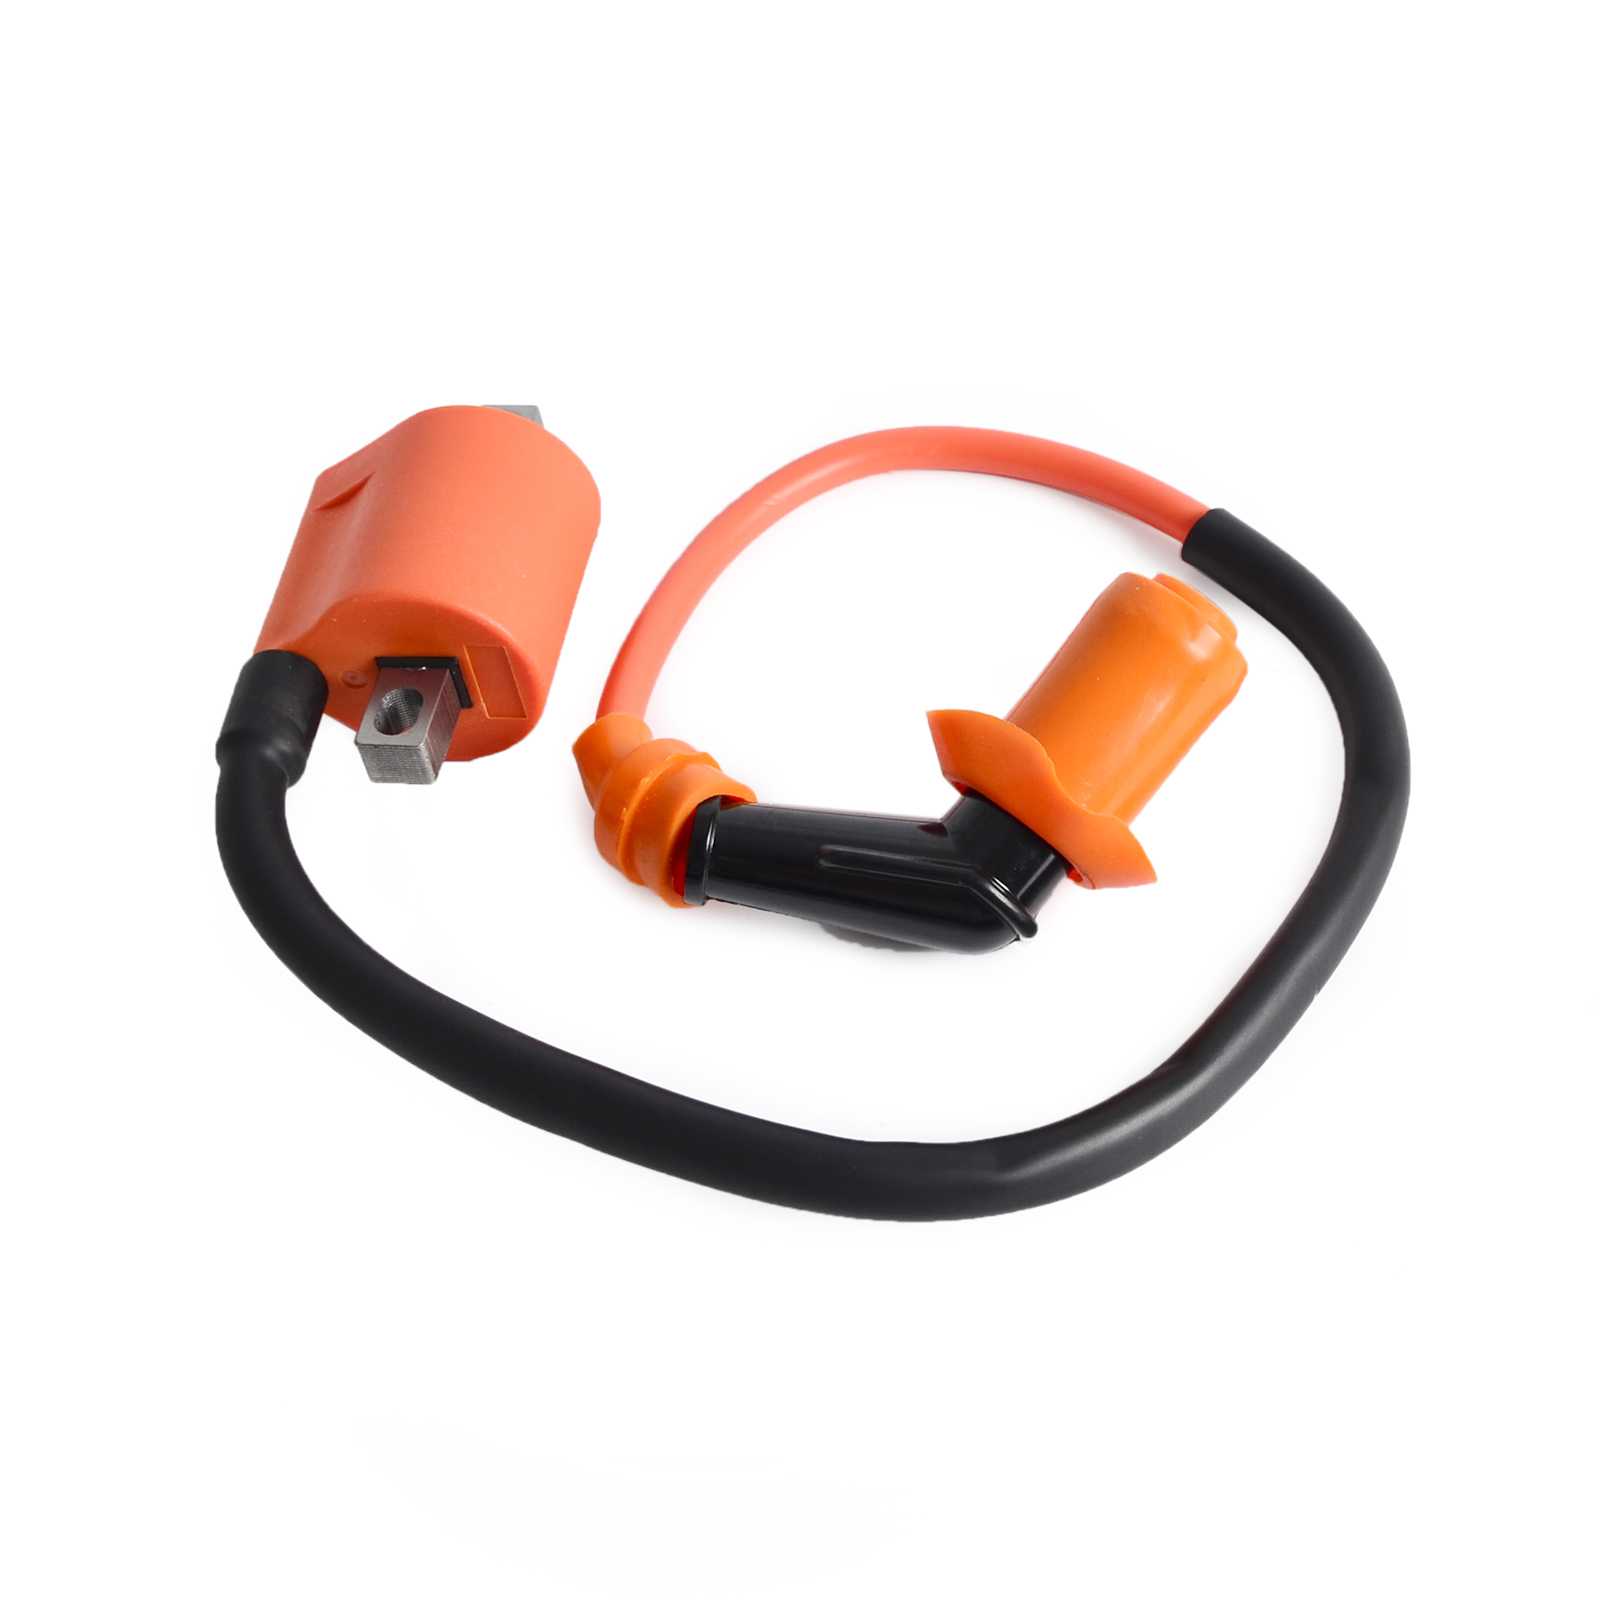 racing ignition coil for yamaha pw50 pw80 yfm350 450 raptor 250 125 warrior bigbear 250 350 in motorbike ingition from automobiles motorcycles on  [ 1600 x 1600 Pixel ]